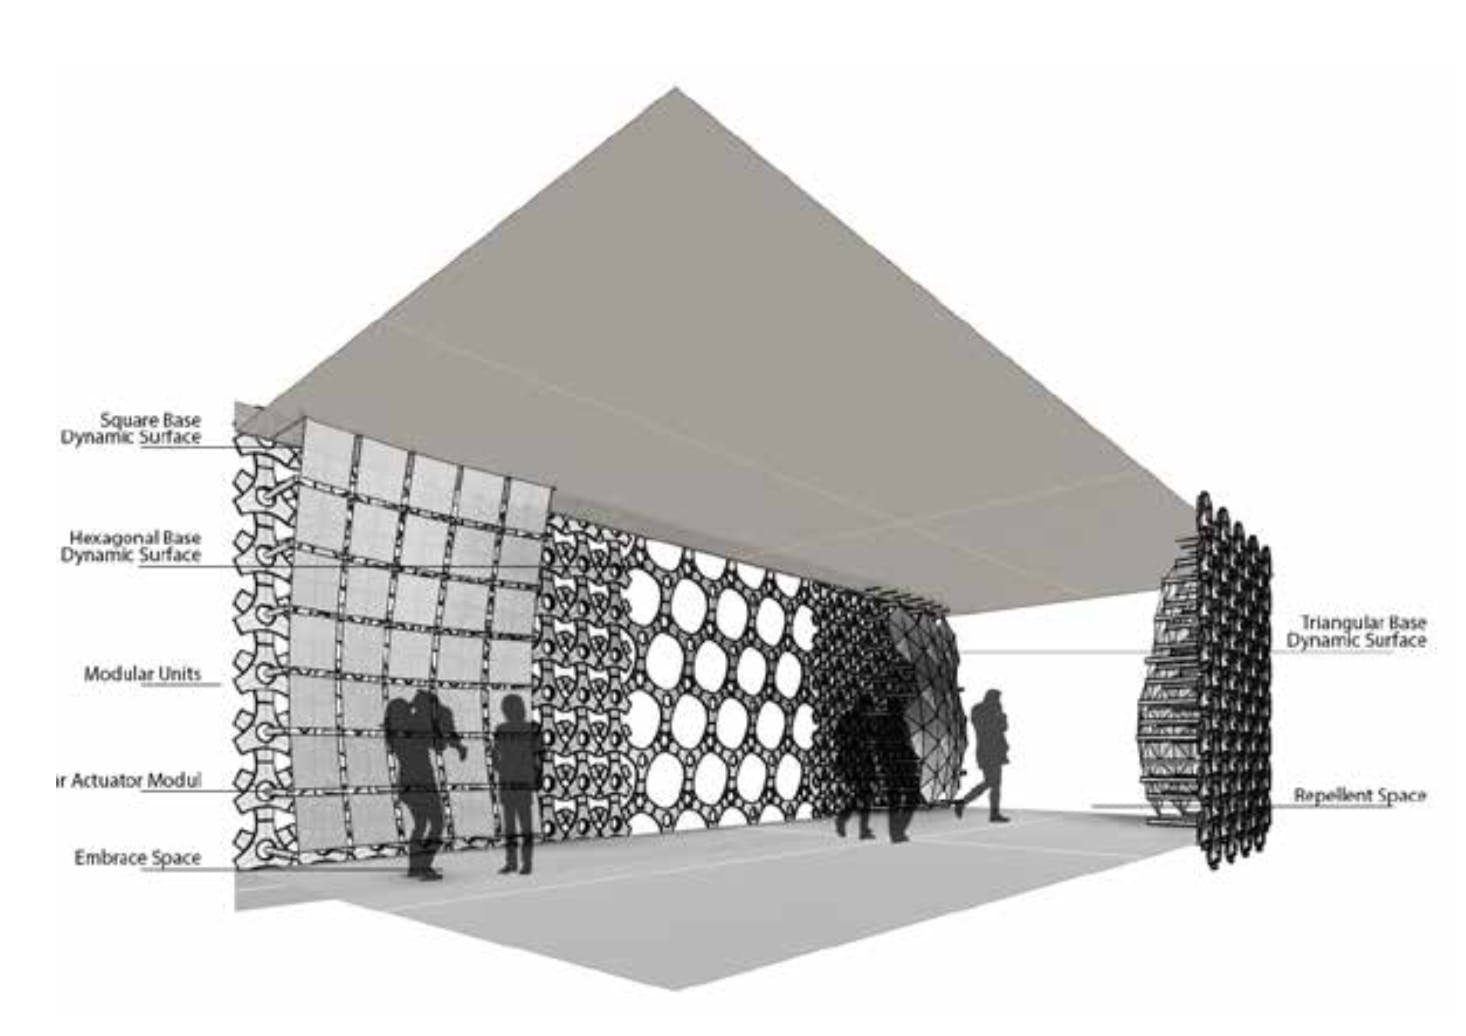 Rendering for the system application